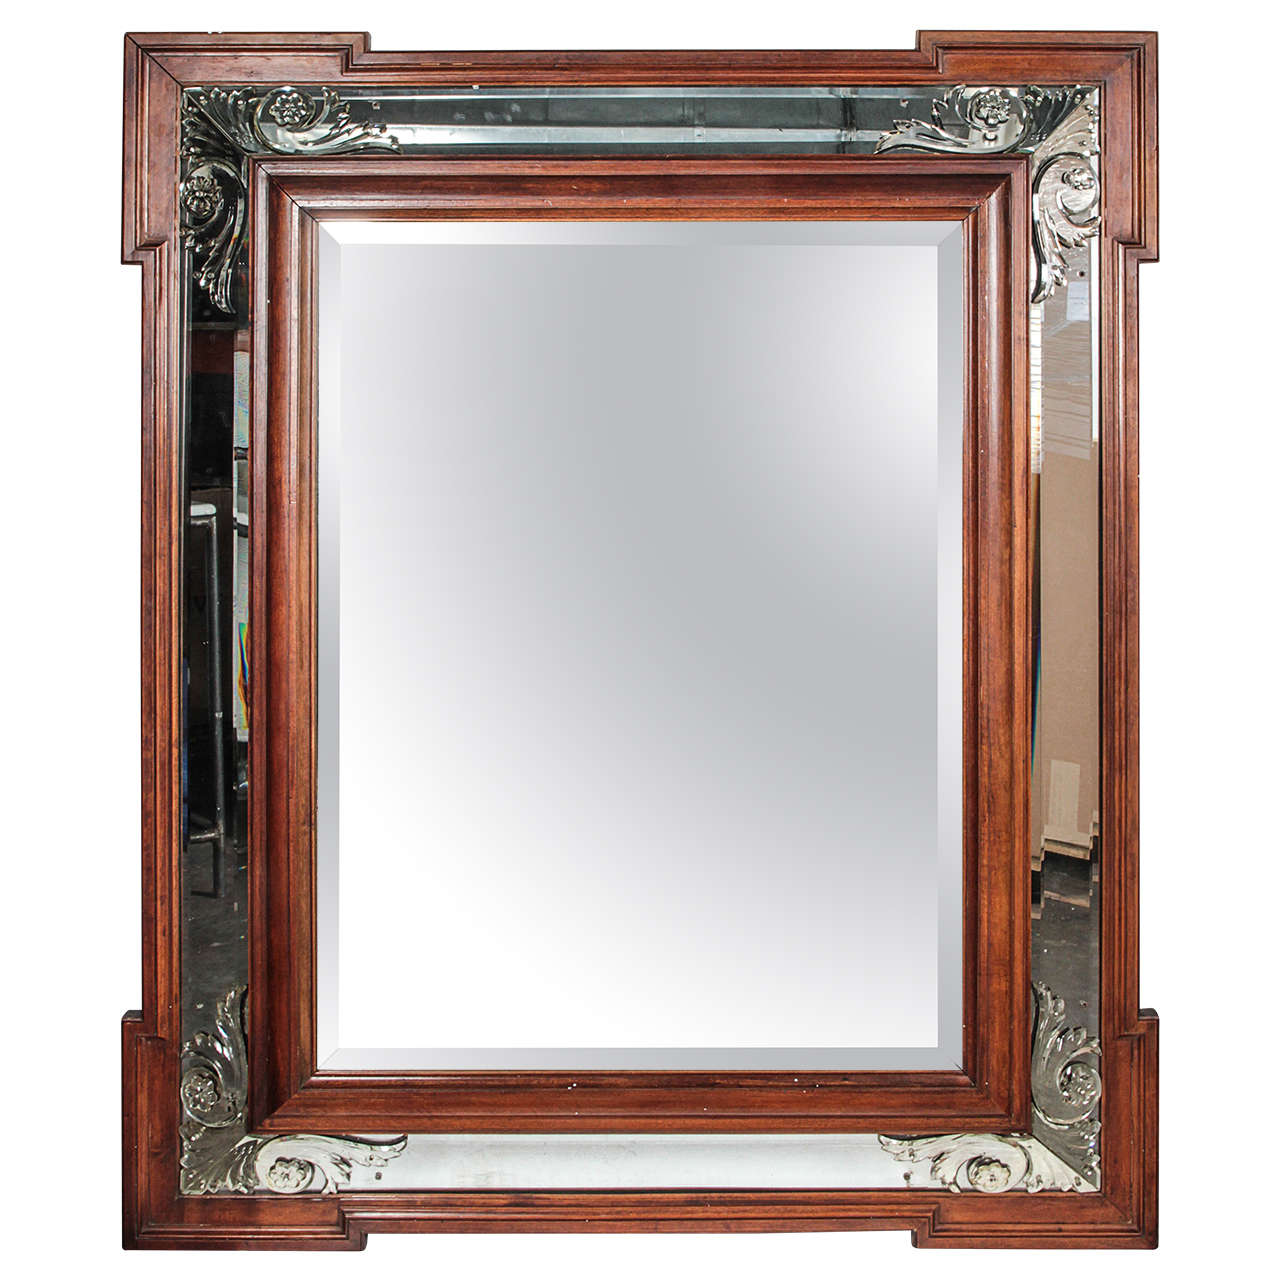 Art Deco Decorative Beveled Mirror For Sale At 1stdibs